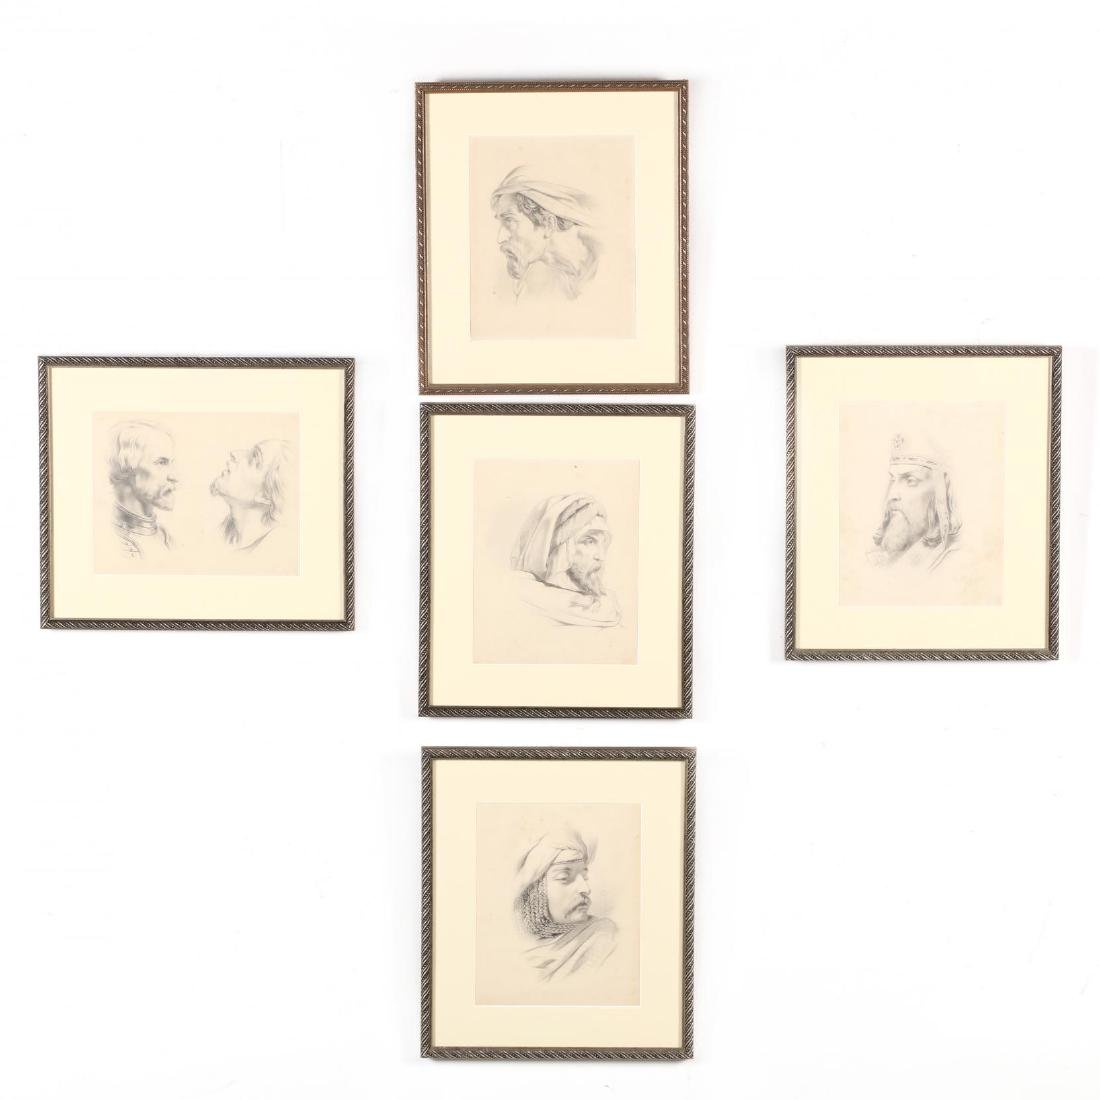 Peter Calvi, Jr. (NY, 1860-1926), Five Sketches of Men